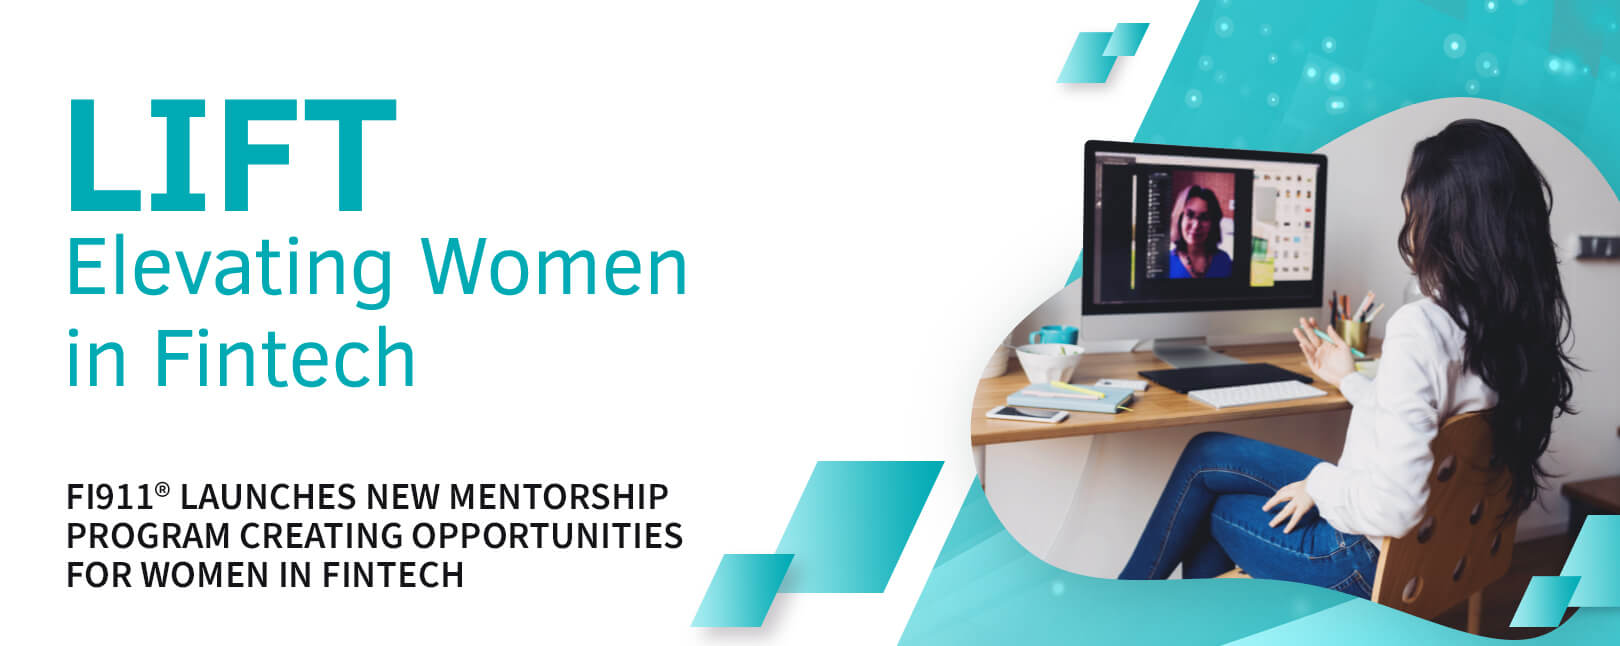 Mentorships Offering a Hand to Women in the Fintech Space